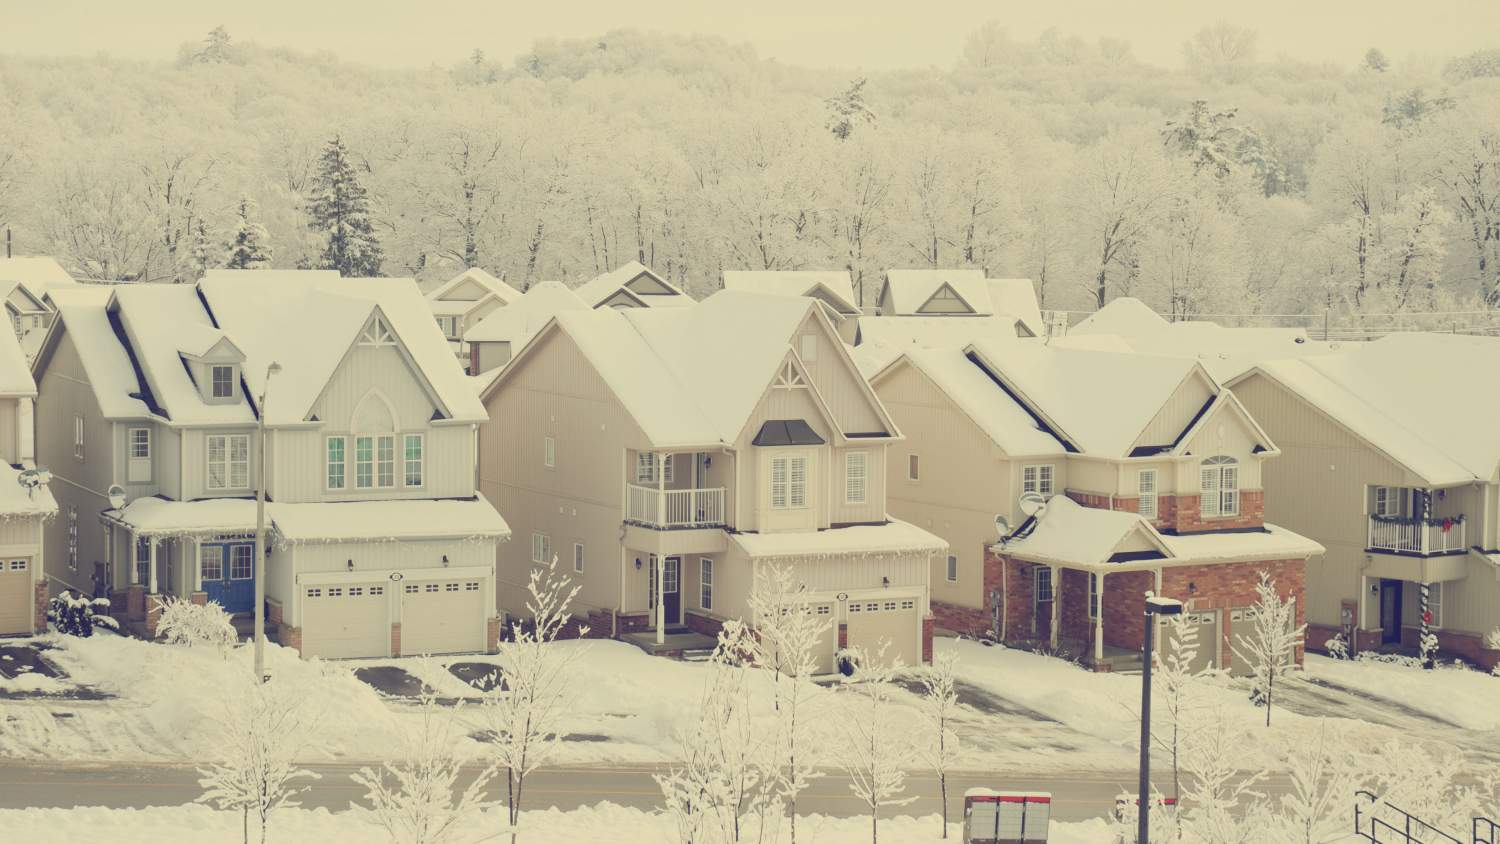 Subdivision houses in the winter